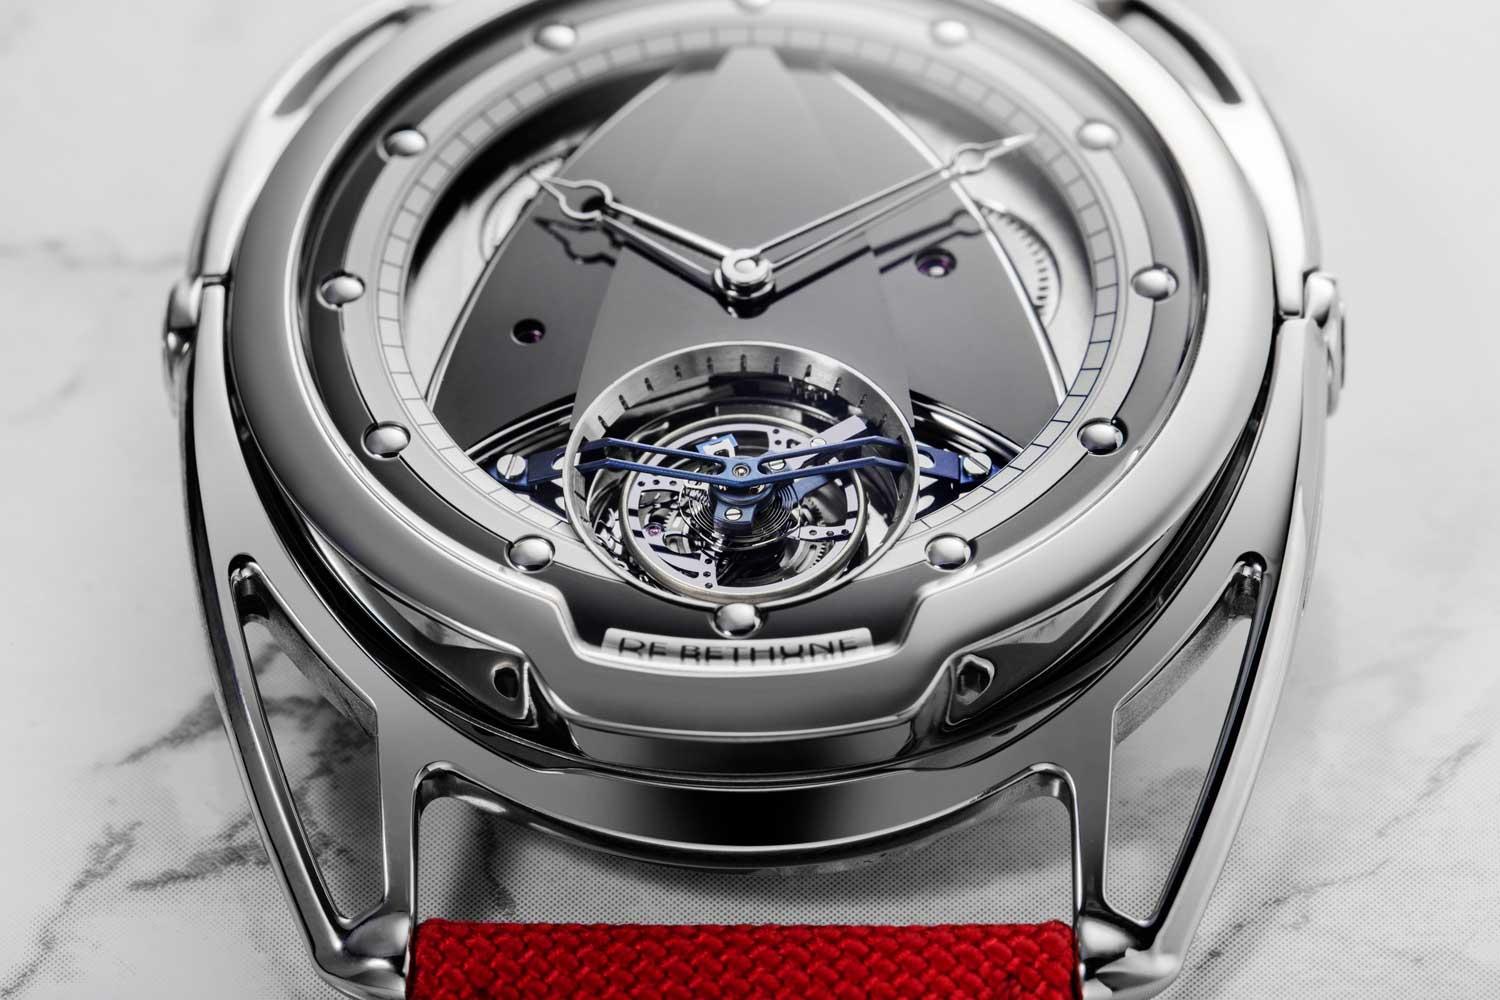 The De Bethune Tourbillon (Image © Revolution)